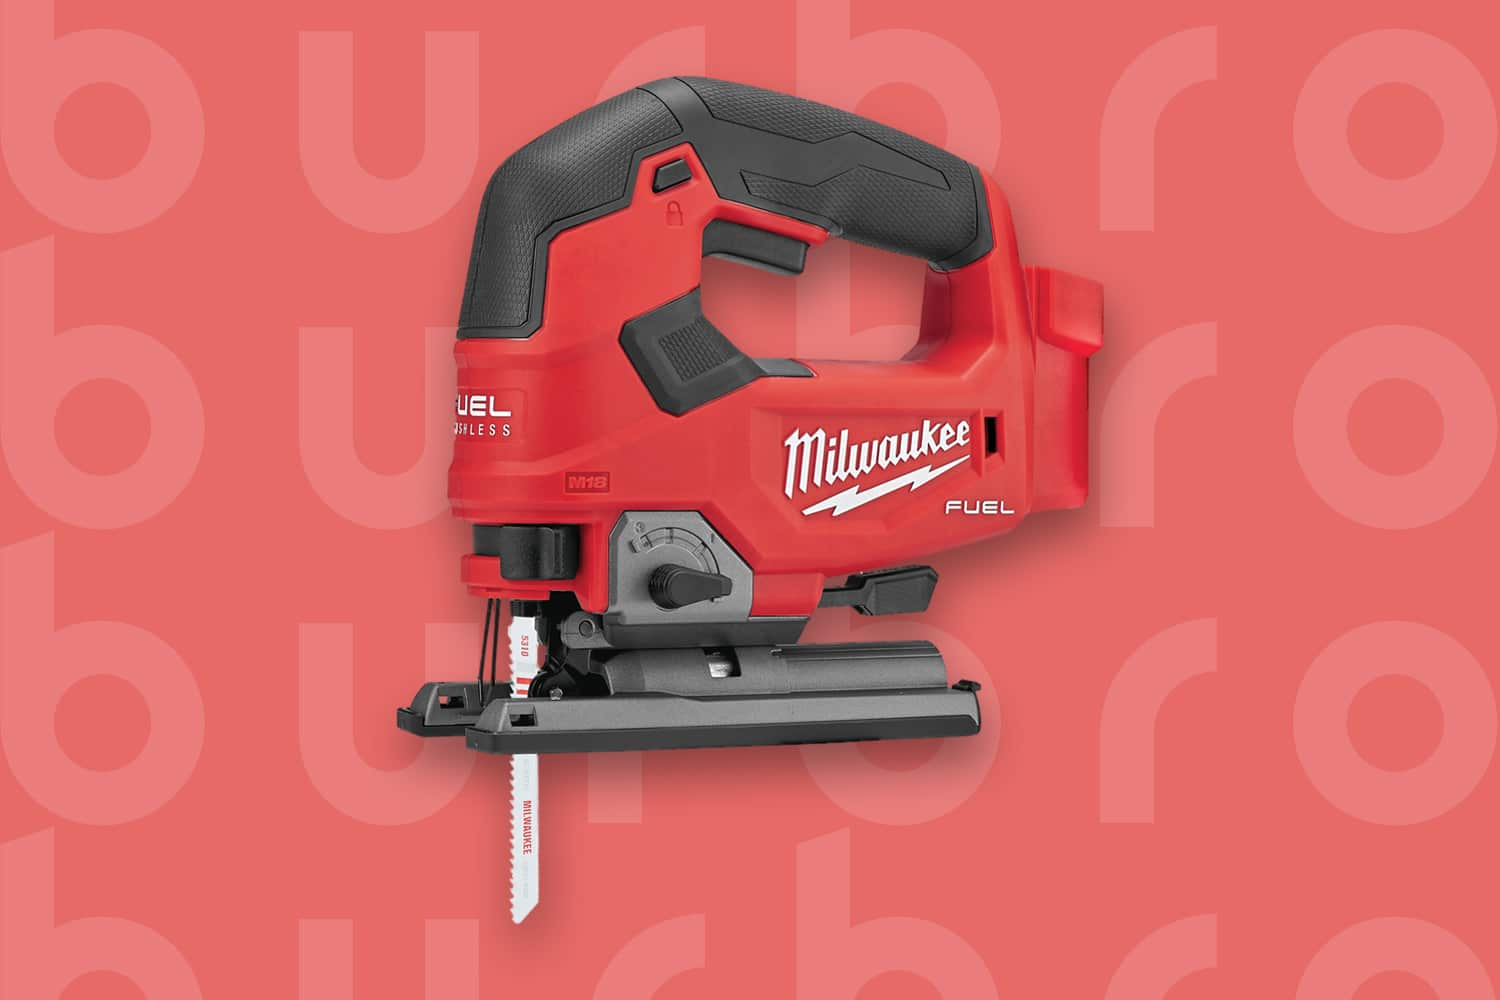 This is the cover photo for our Best Jigsaw article. It features a red Milwaukee jigsaw overlaying a light red poster background with an embossed Burbro logo.